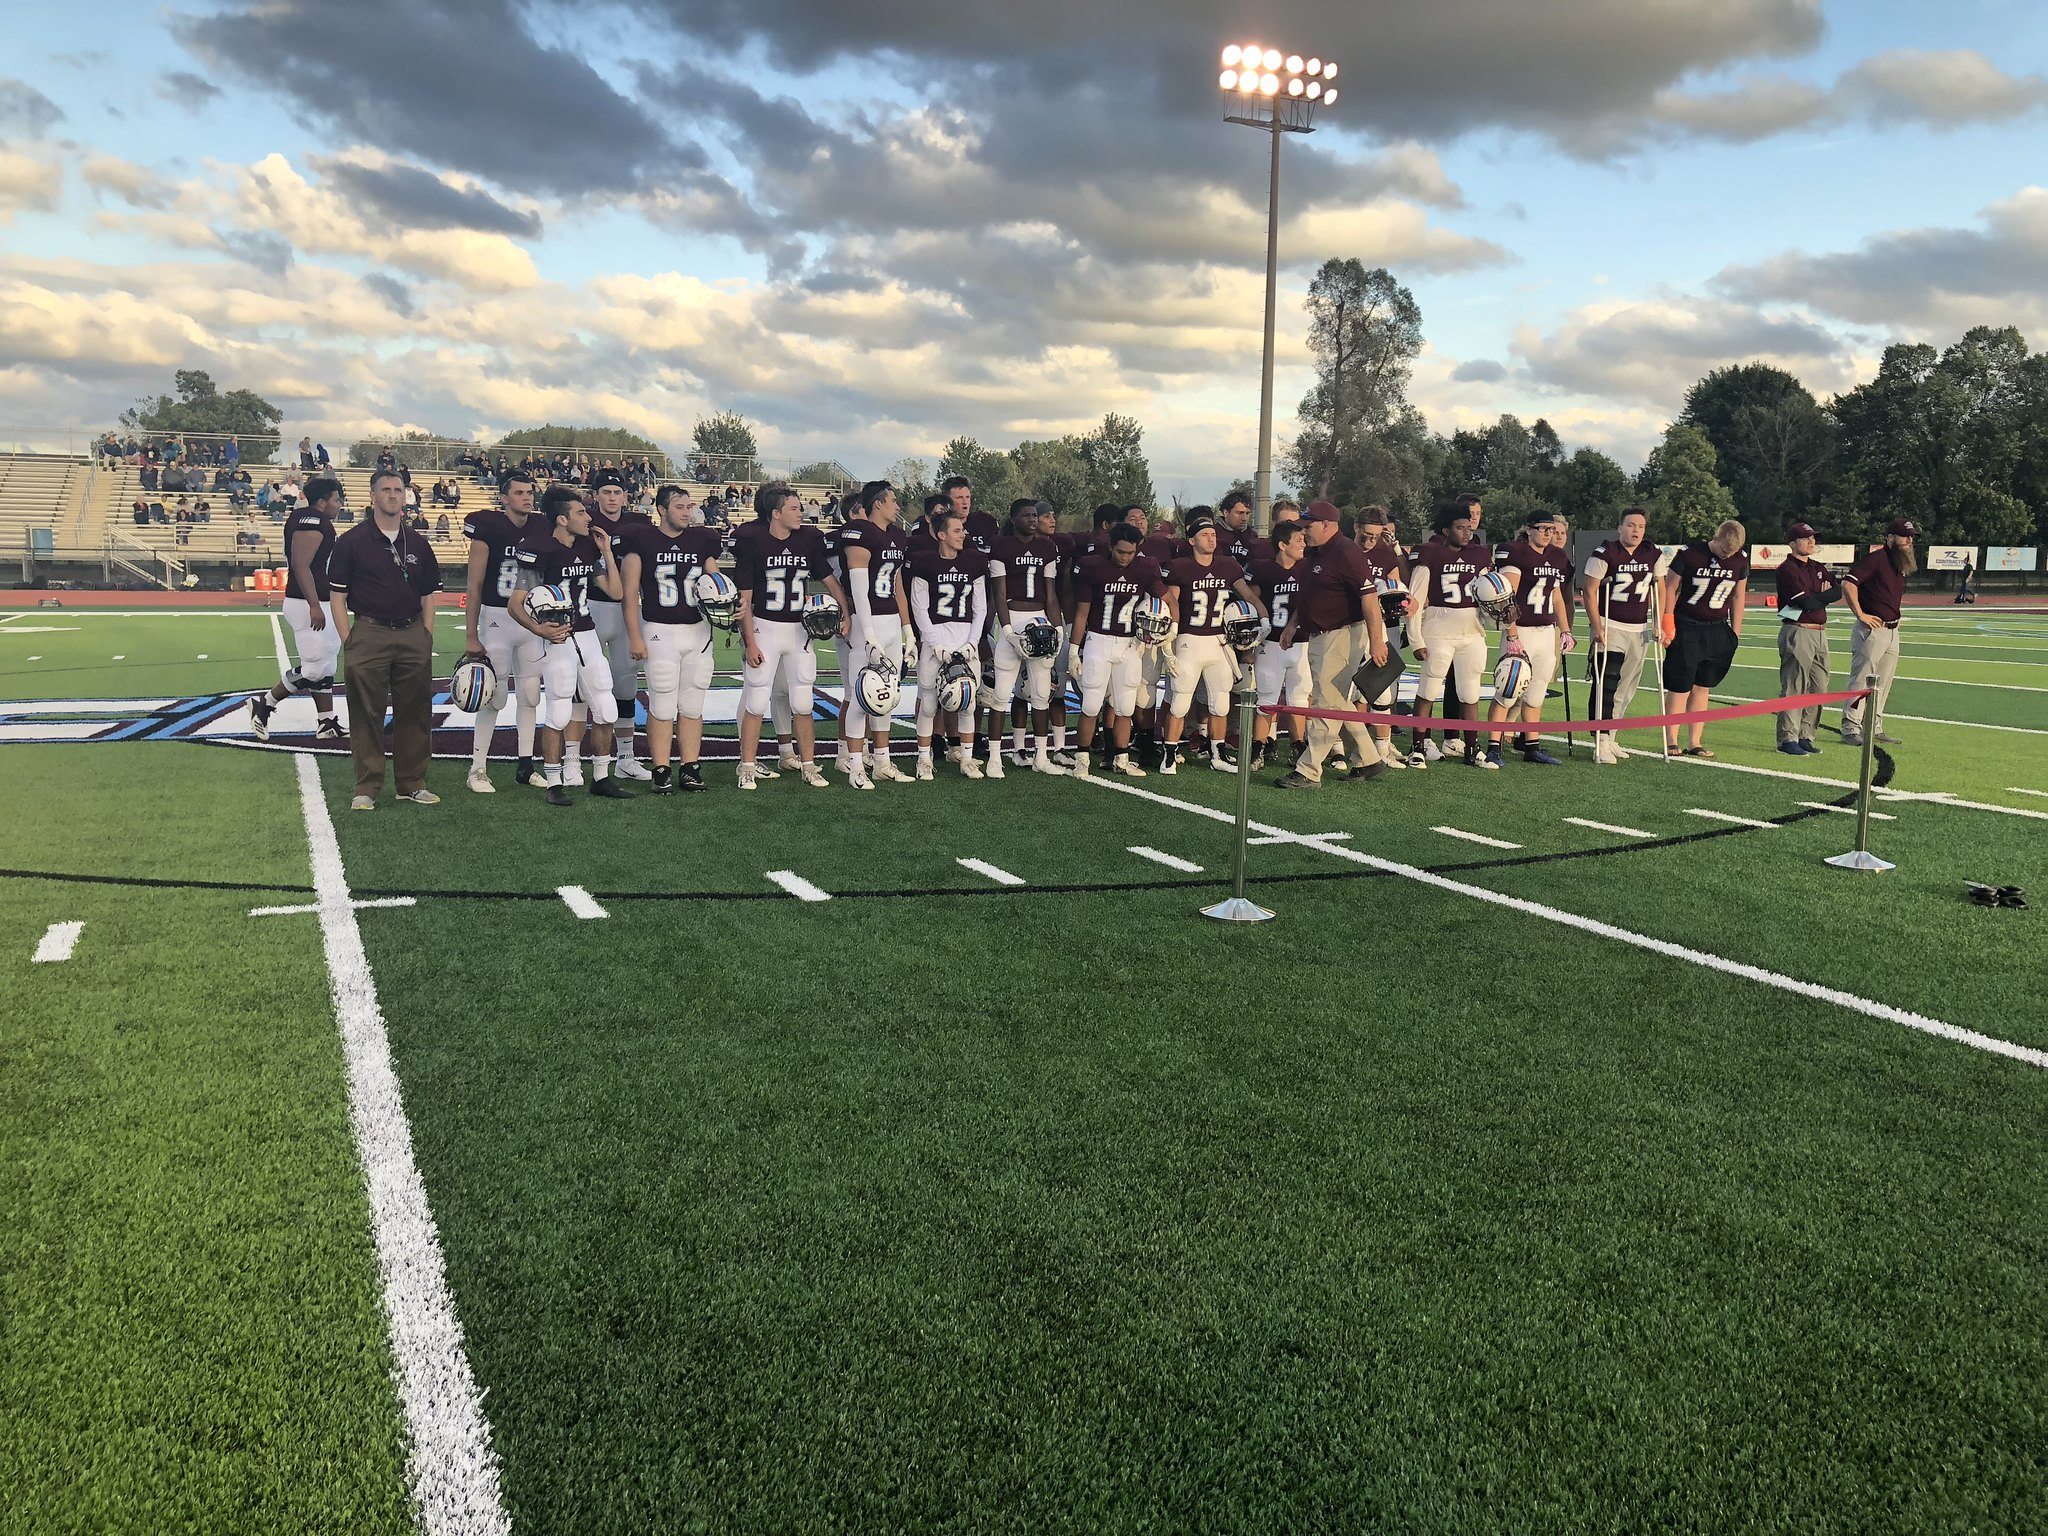 Okemos Stuns Grand Ledge in First Game on New Turf